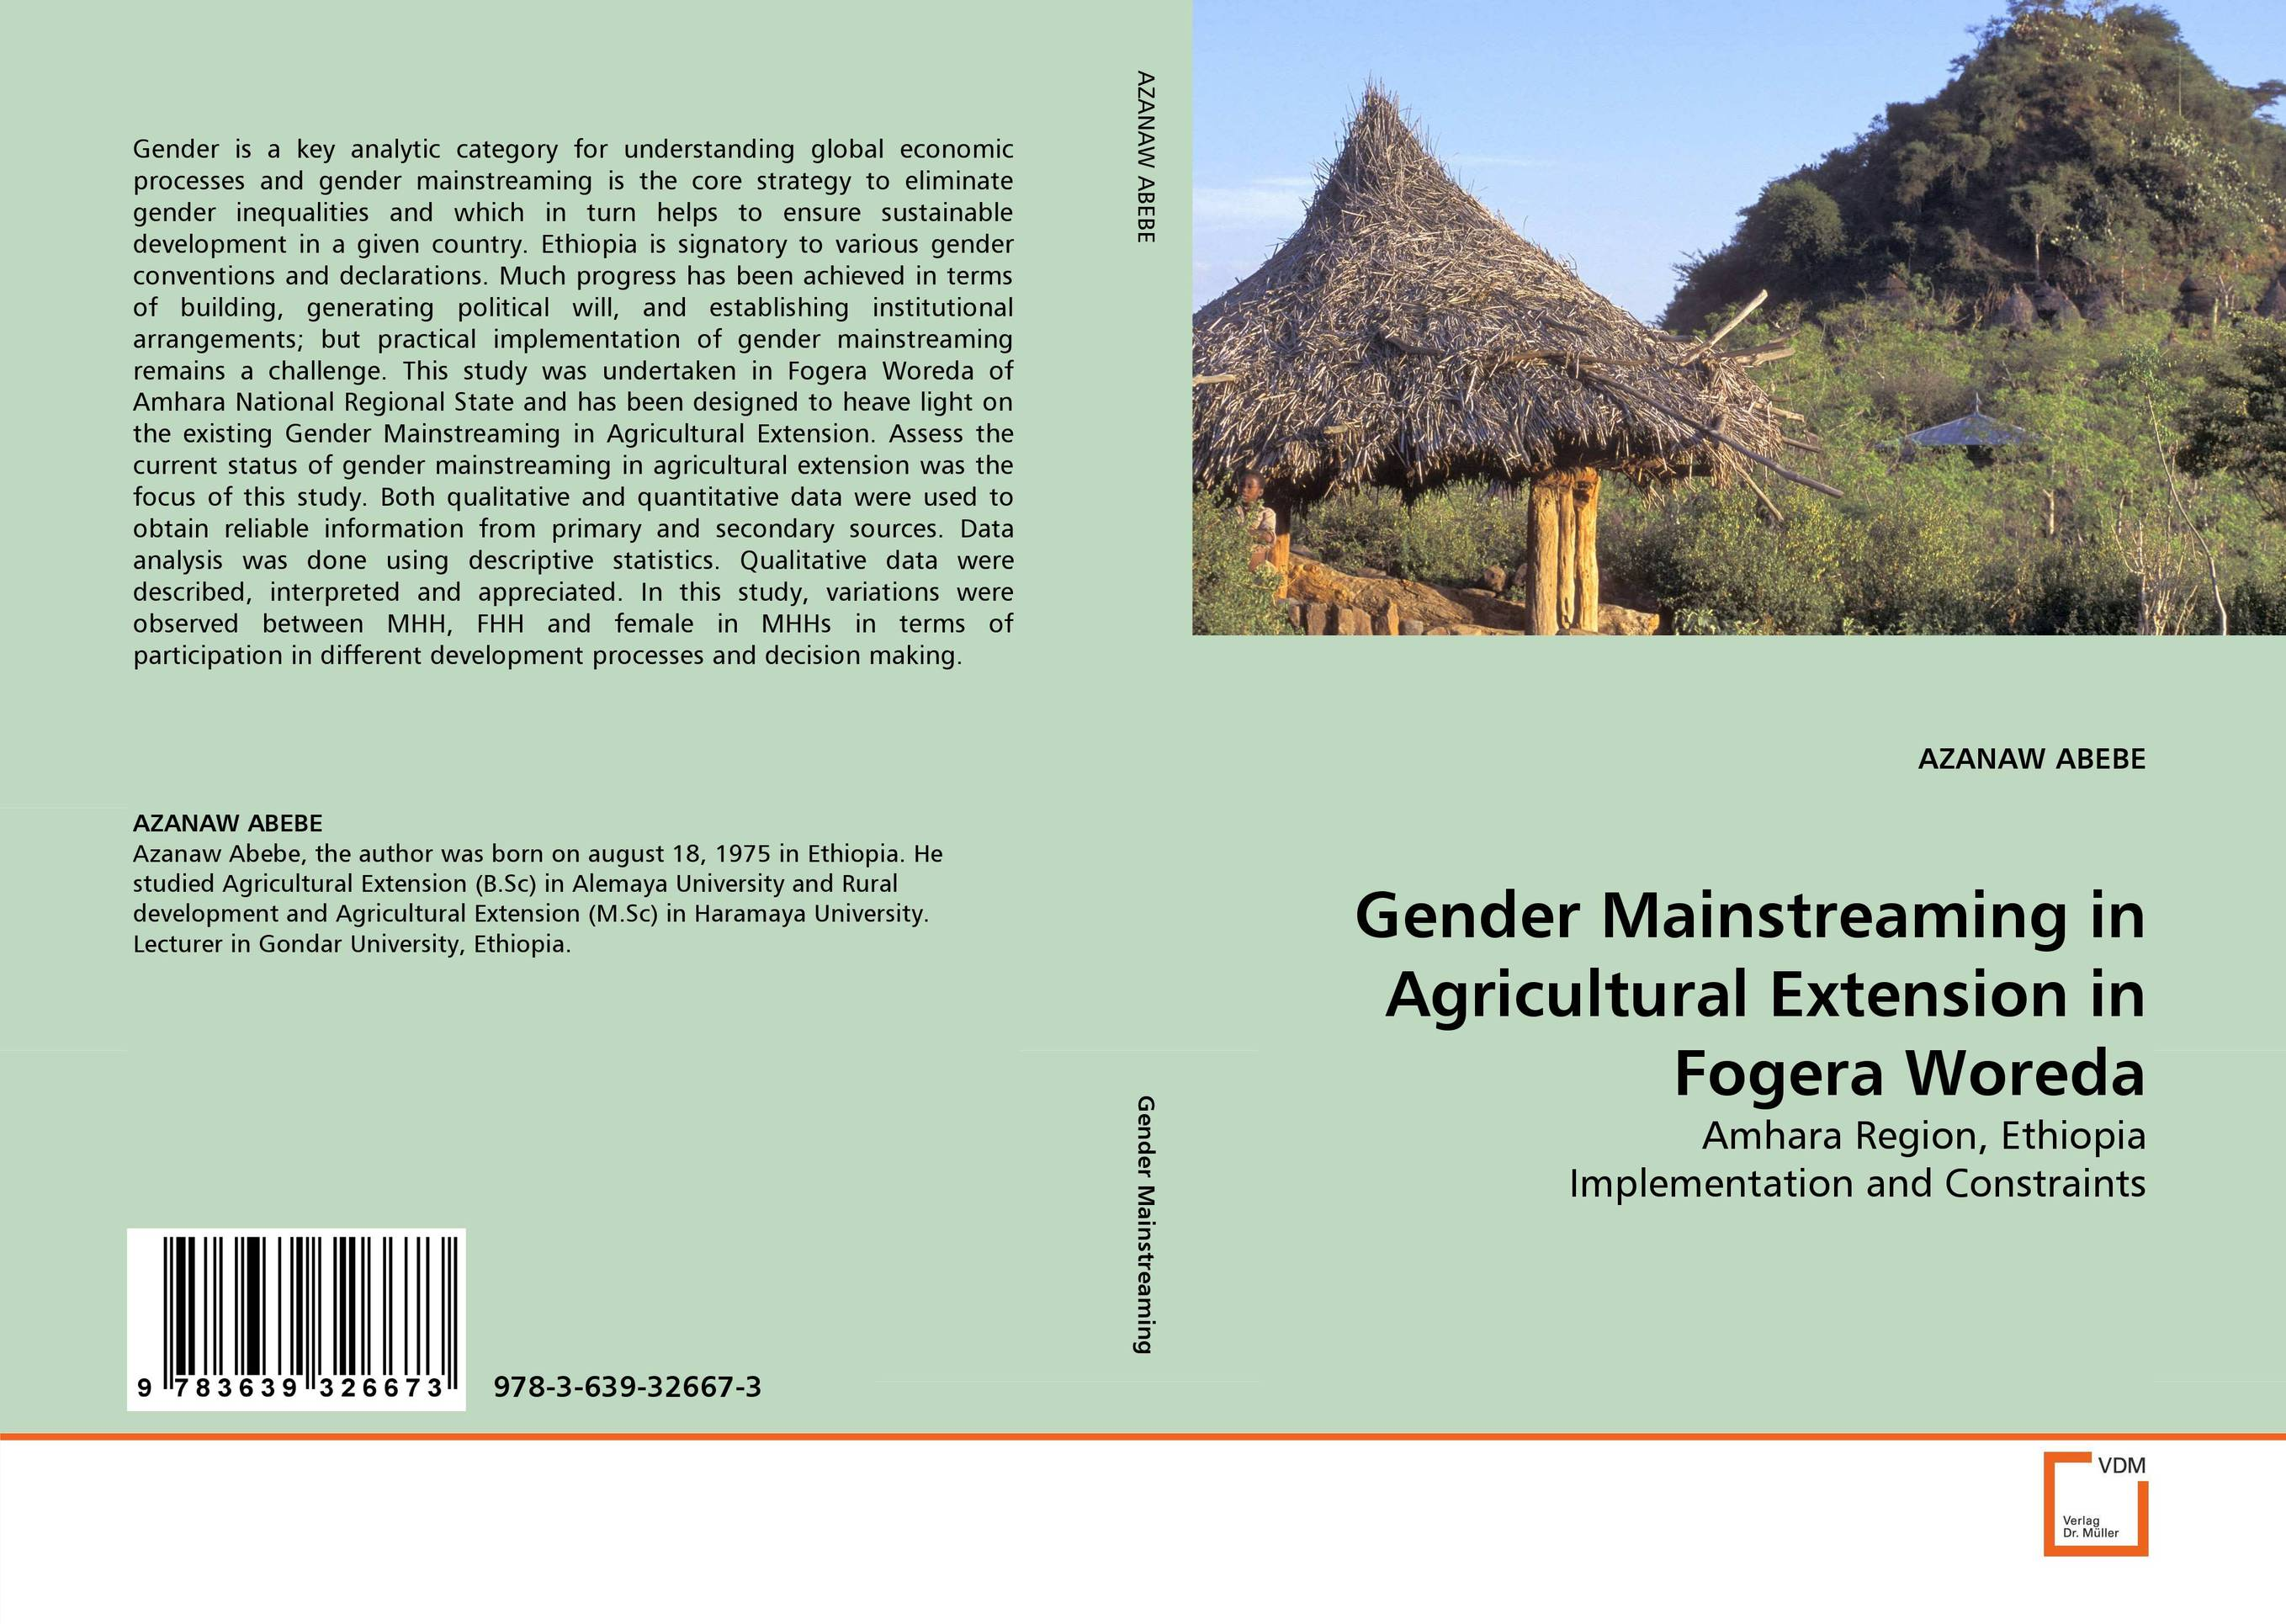 Фото Gender Mainstreaming in Agricultural Extension in Fogera Woreda cervical cancer in amhara region in ethiopia